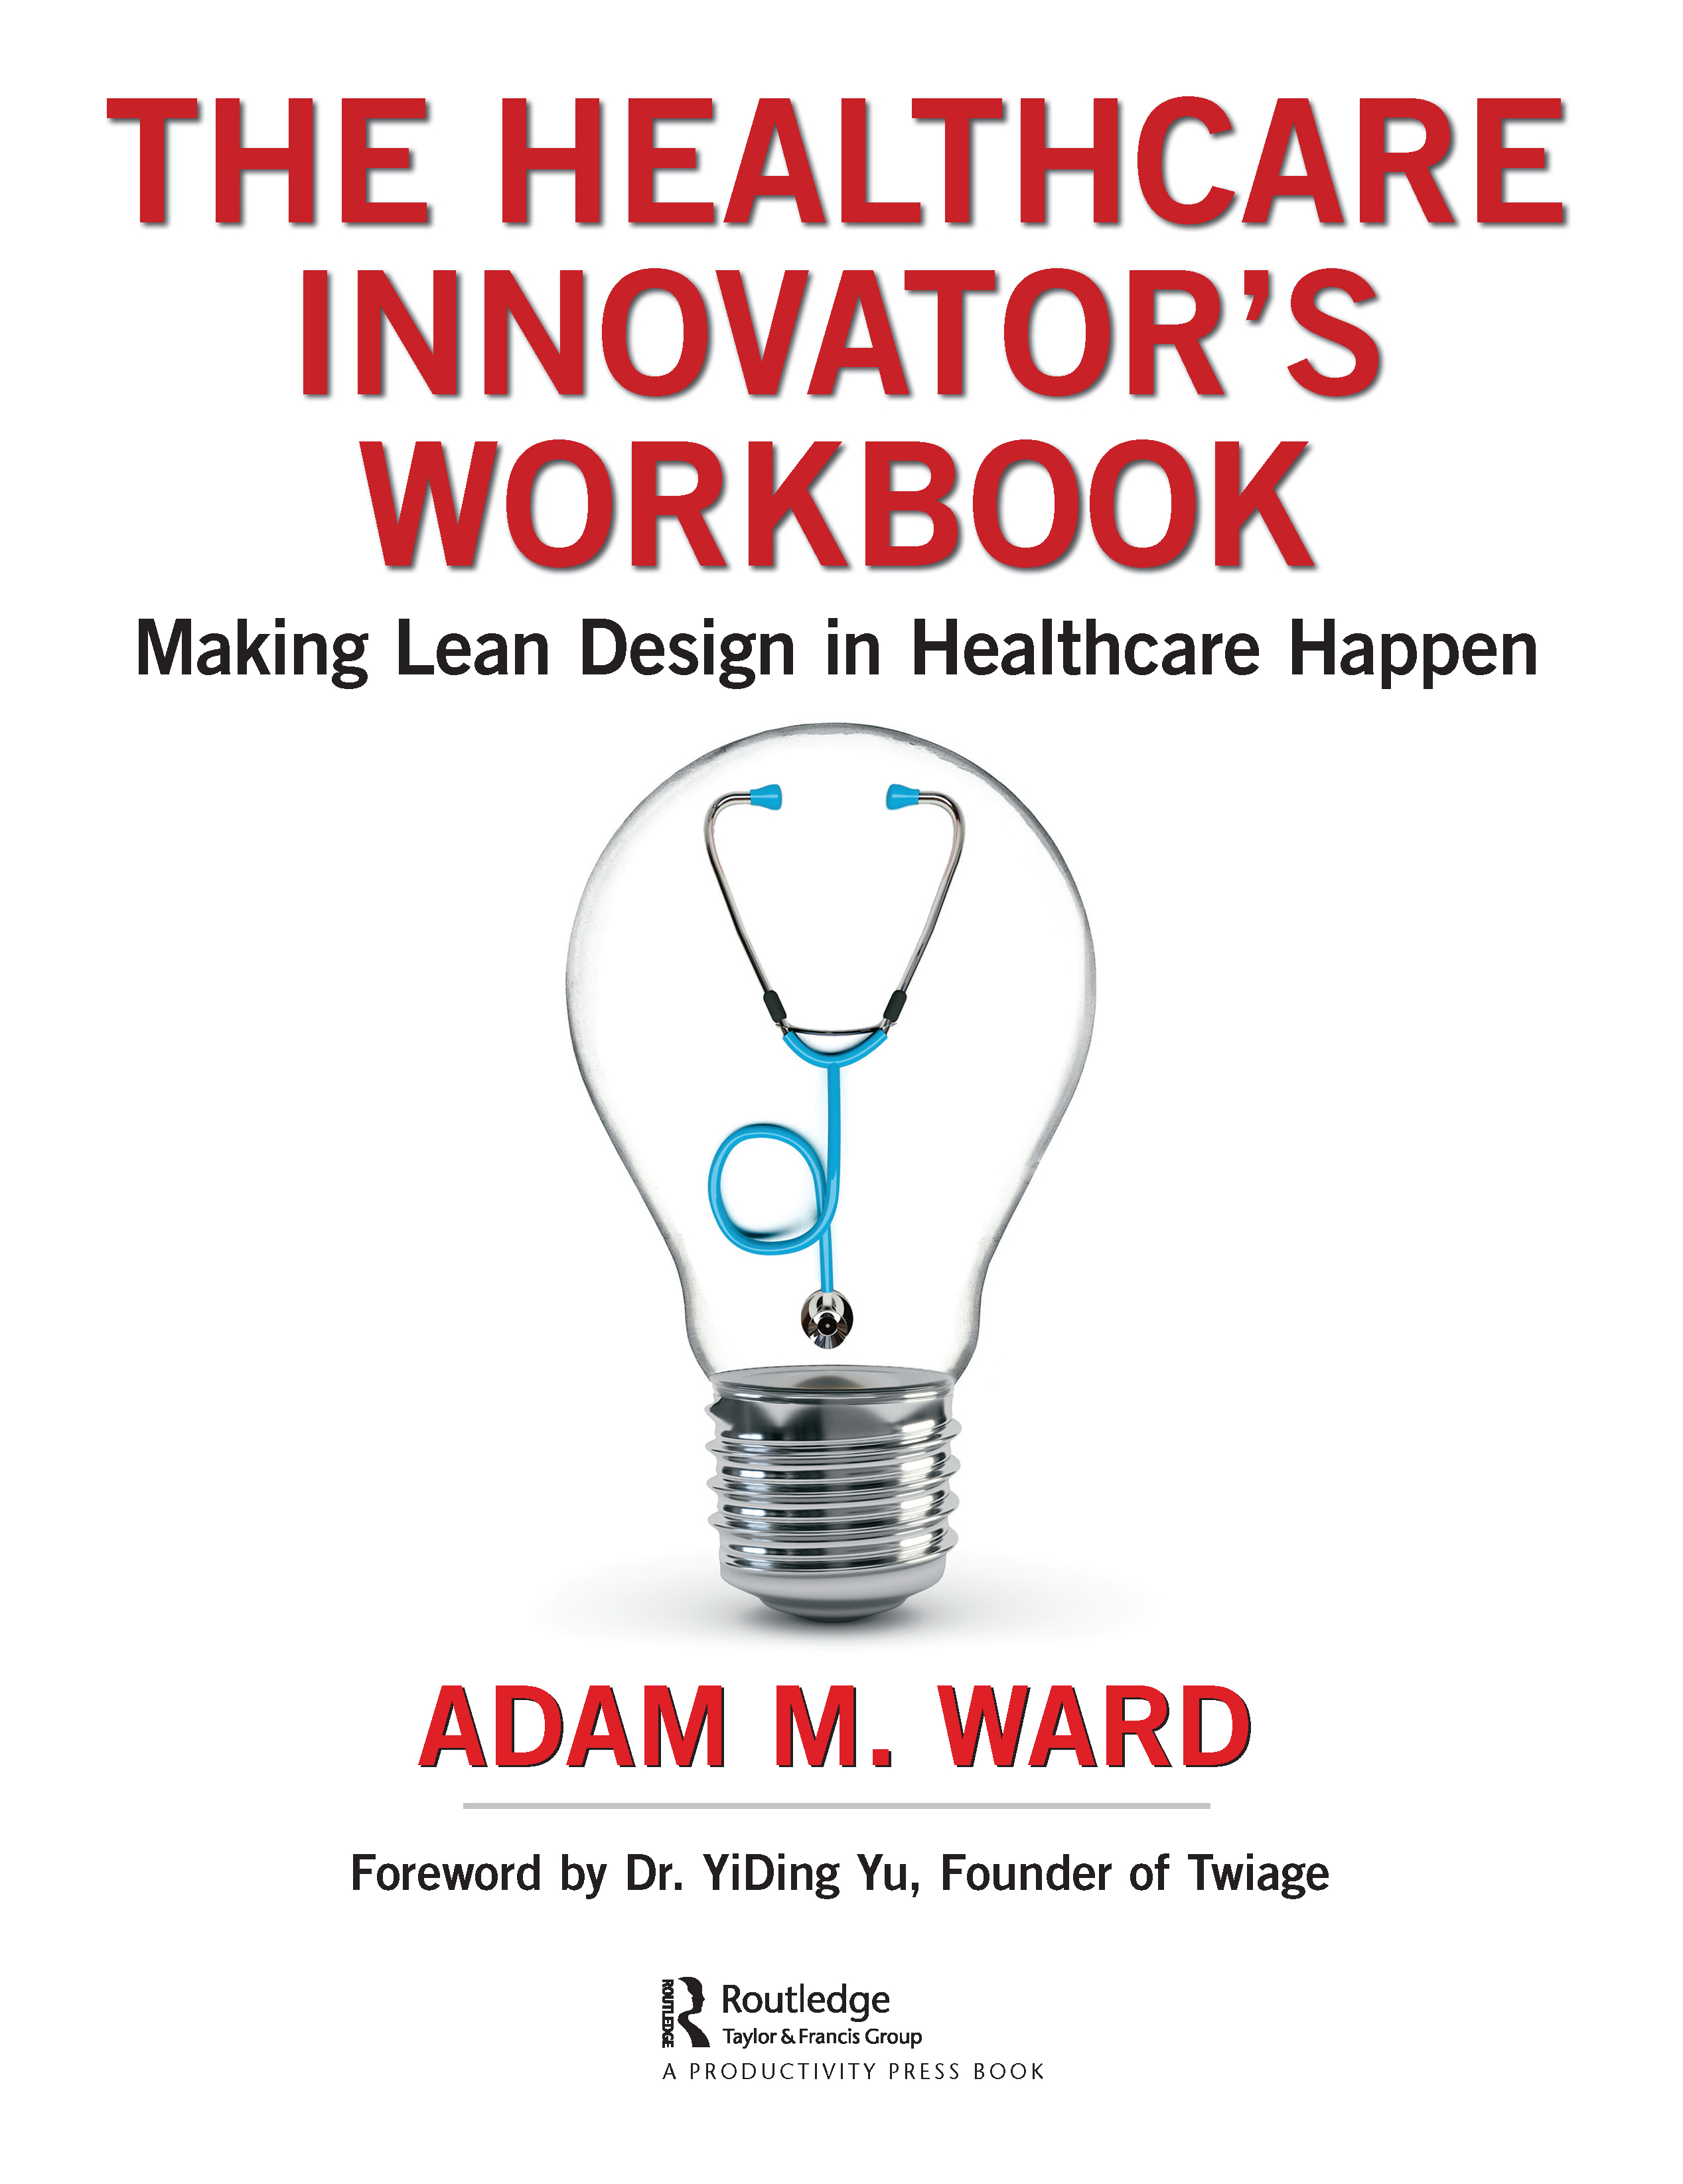 The Healthcare Innovator's Workbook: Making Lean Design in Healthcare Happen book cover